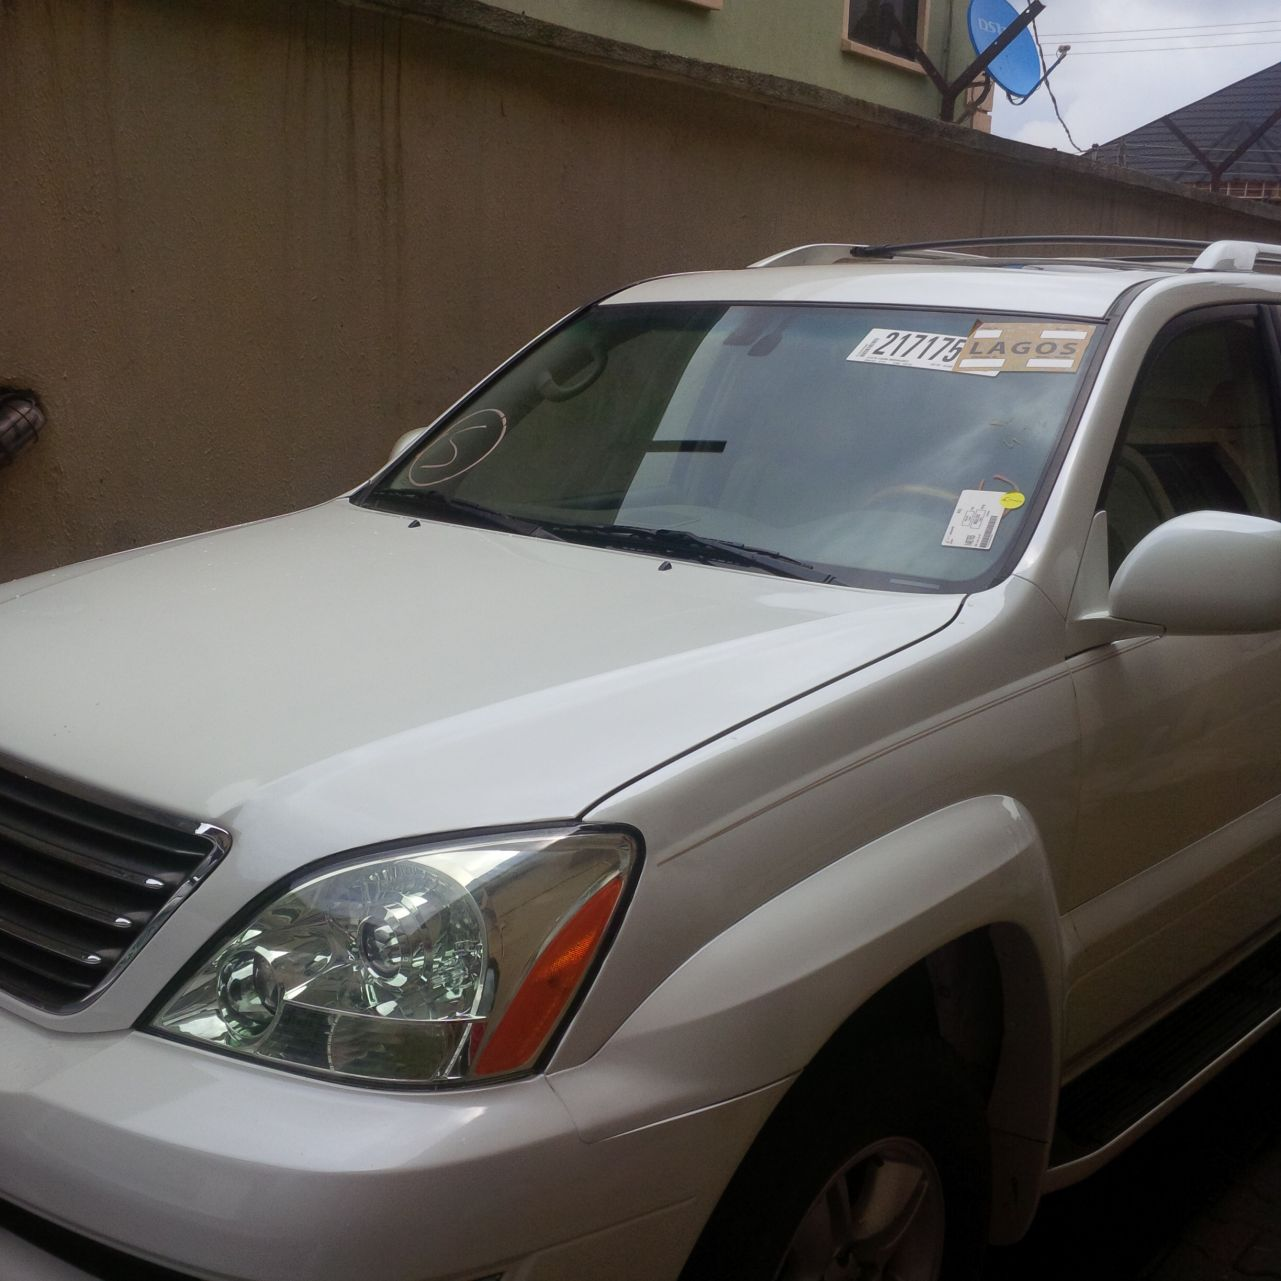 Lexus Suv 2005 For Sale: Clean Tokunbo 2005 Lexus GX470 For Sale With Reverse